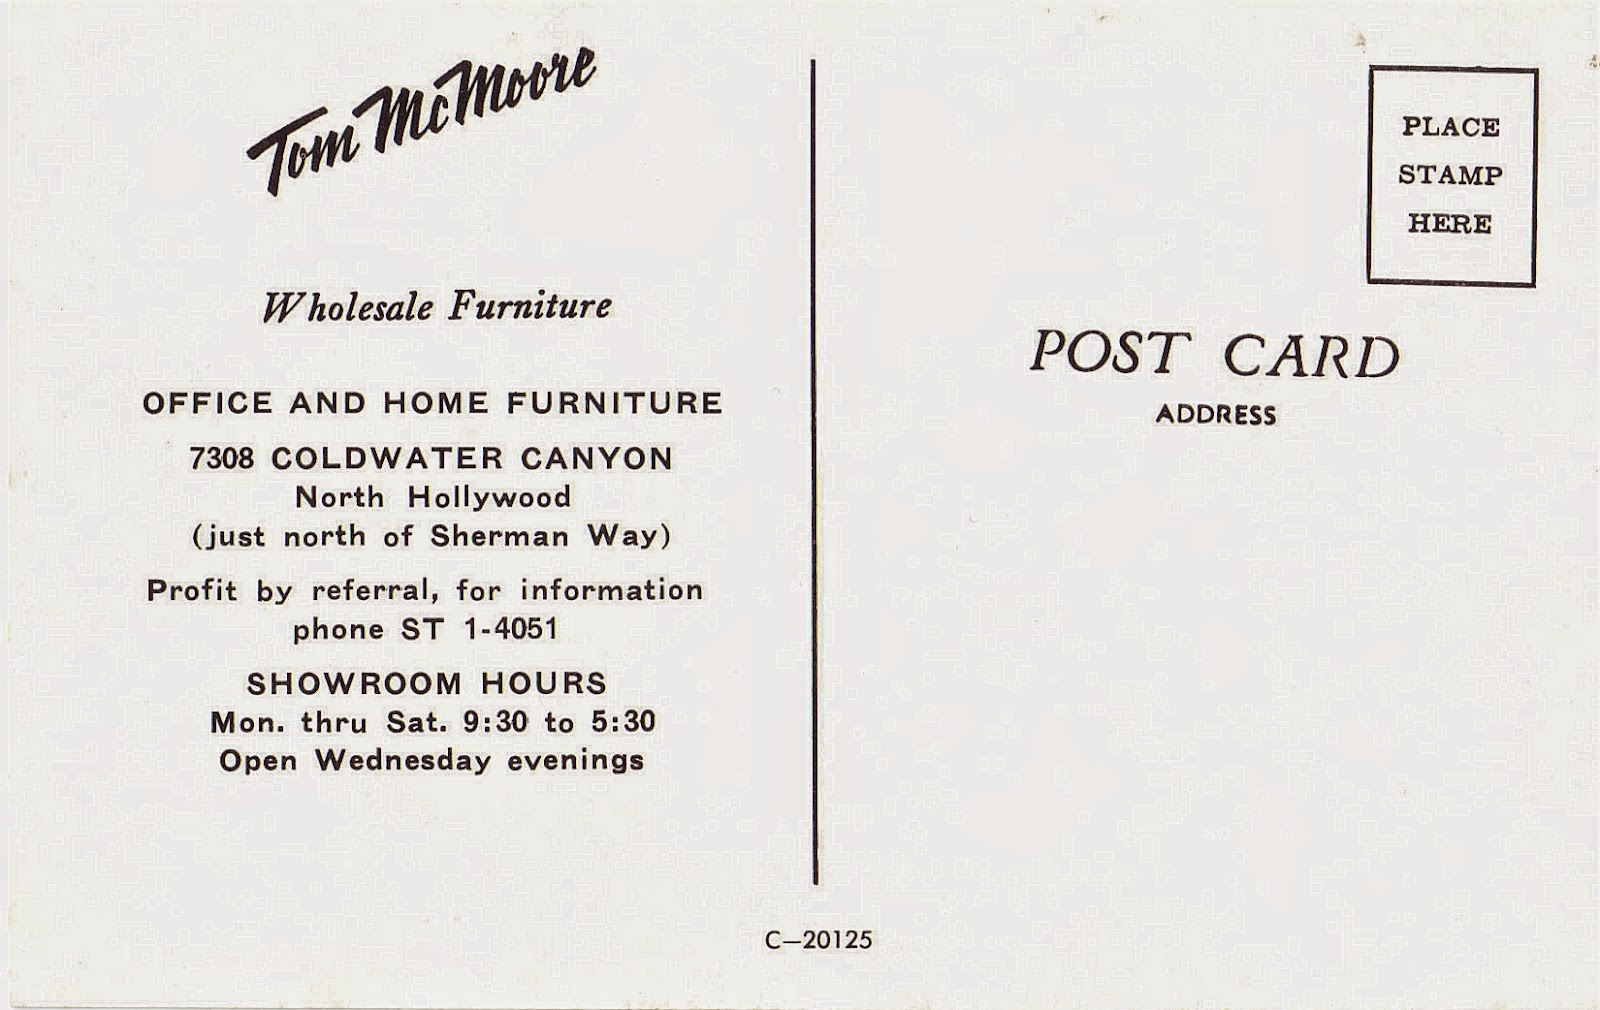 Tom McMoore Wholesale Furniture in North Hollywood Postcard San